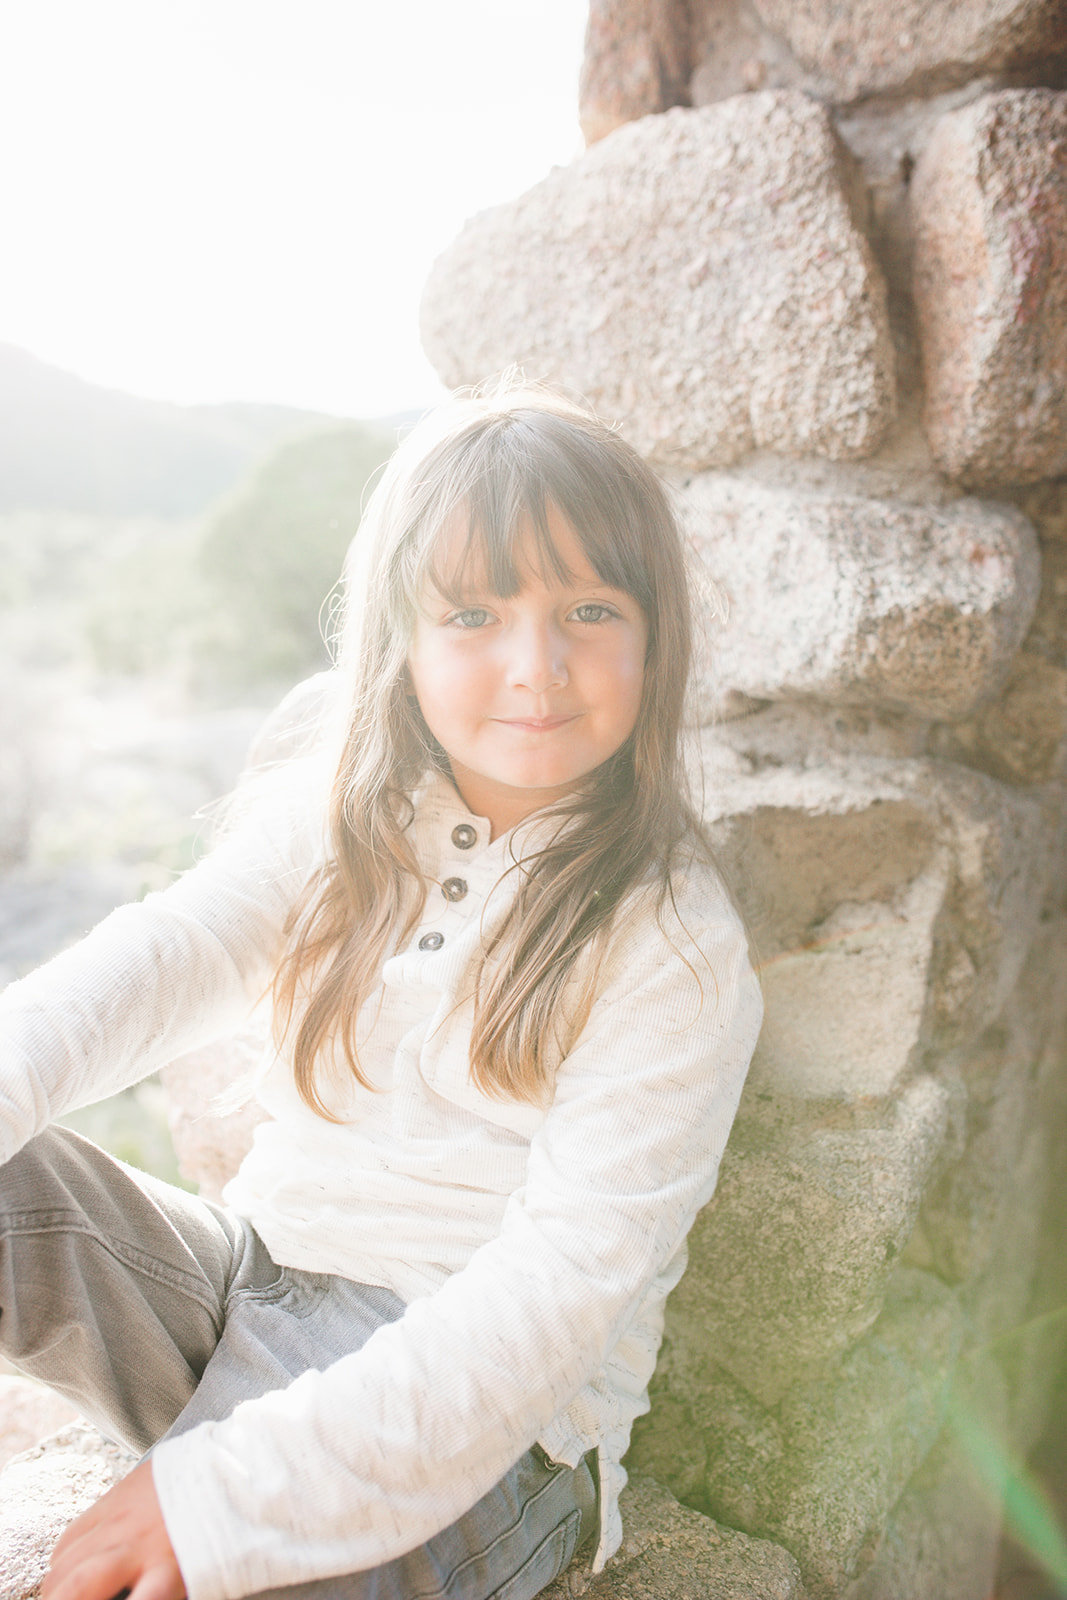 Albuquerque Outdoors Family Photographer_www.tylerbrooke.com_Kate Kauffman_015